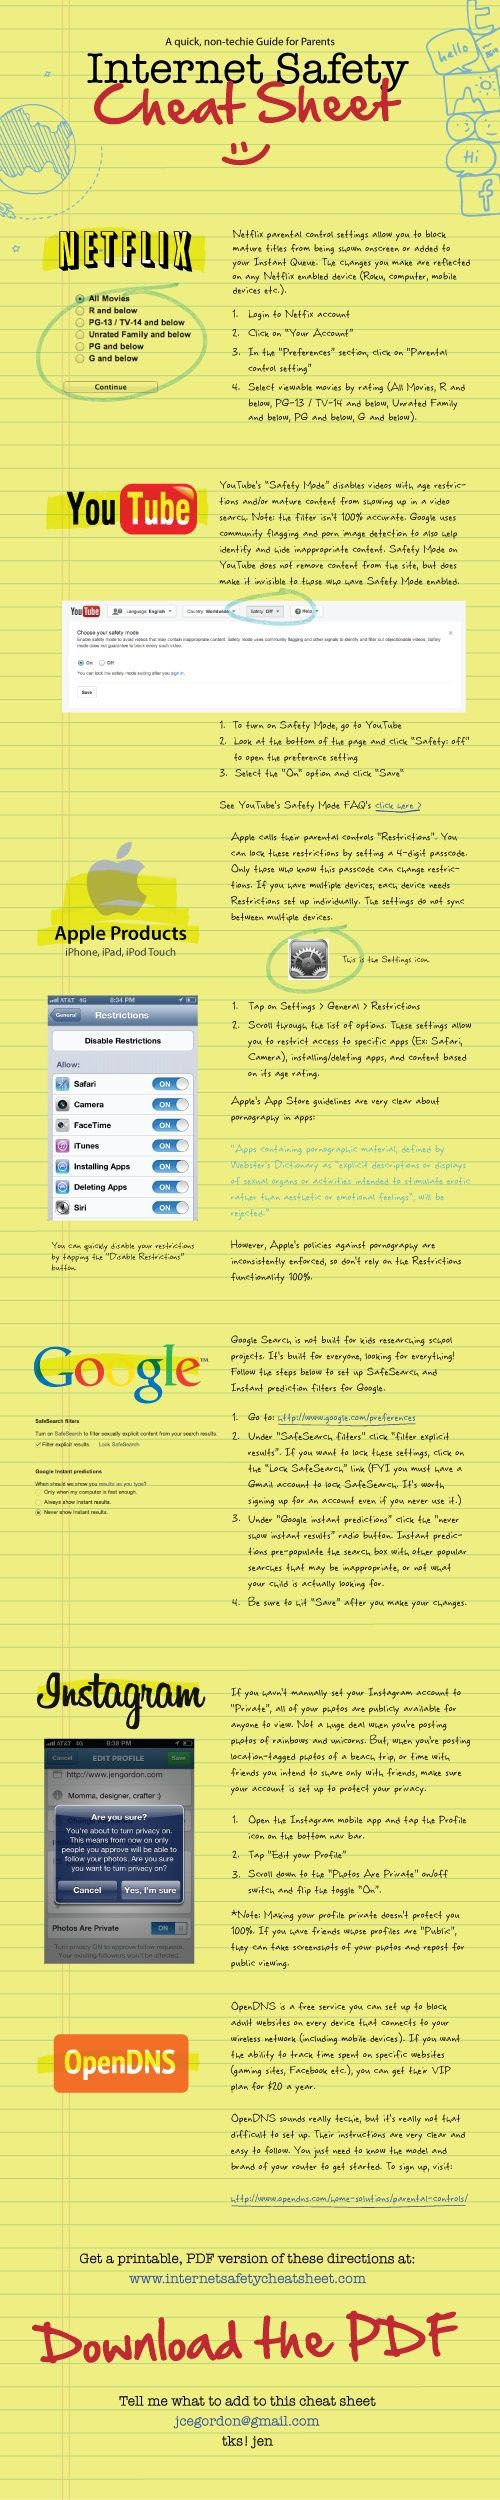 "The Internet Safety ""Cheat Sheet"" for Parents: A quick, non-techie guide for parents."